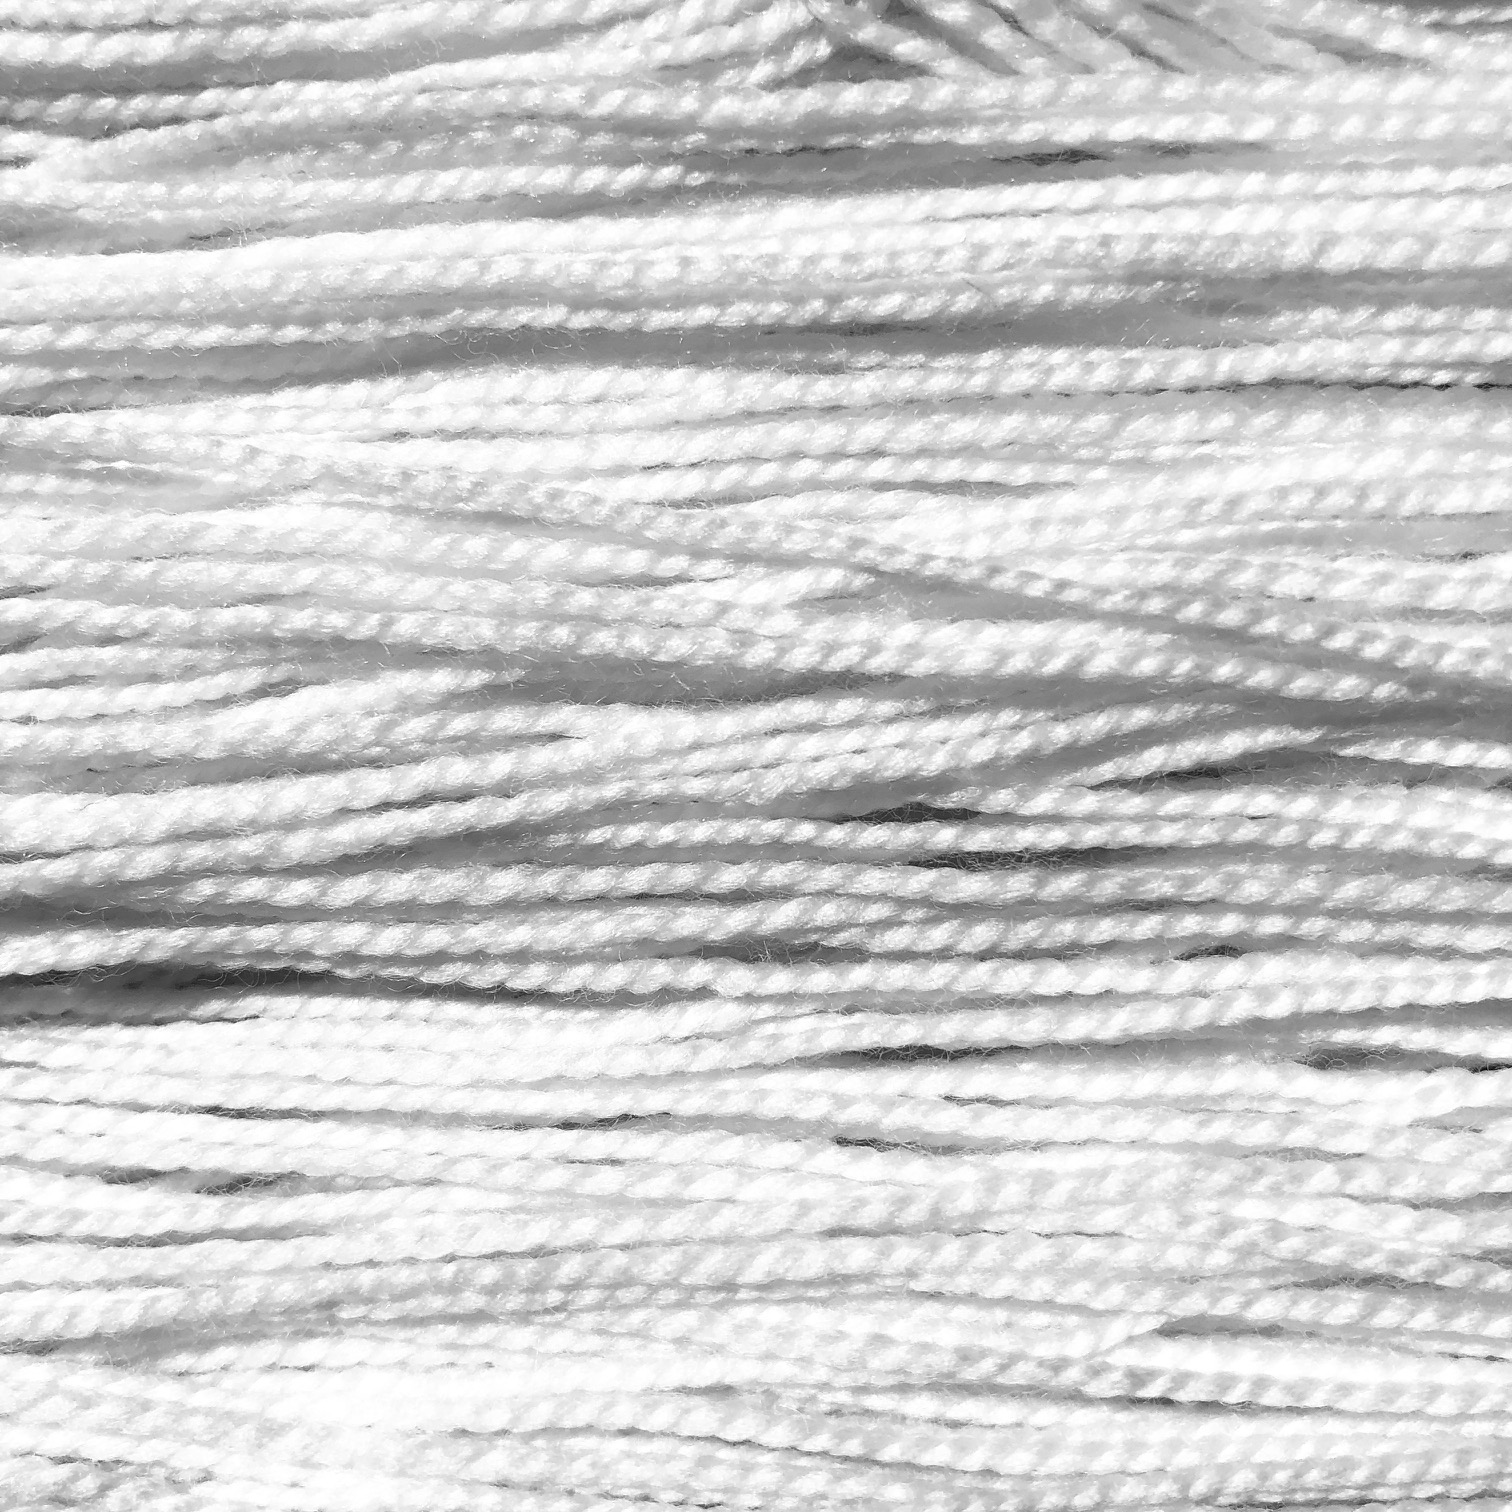 MCN FINGERING - 80% Superwash Merino/10% Cashmere/10% Nylon // 400 yds/100 grThe same twist and yardage as the 2-ply Fingering but with a touch of luxurious cashmere.